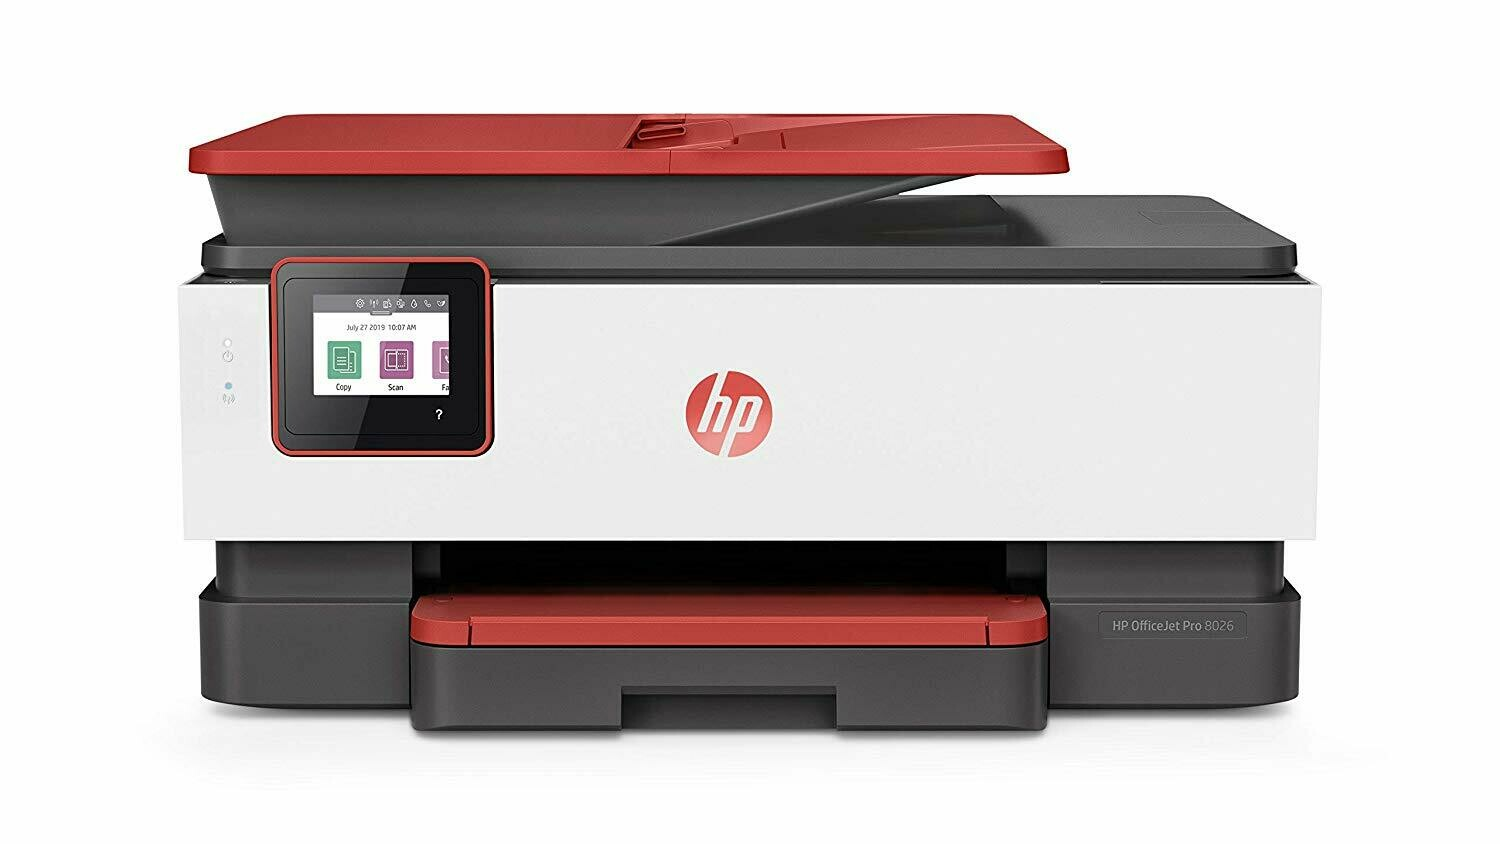 HP OfficeJet Pro 8026 All-in-One Colour Printer